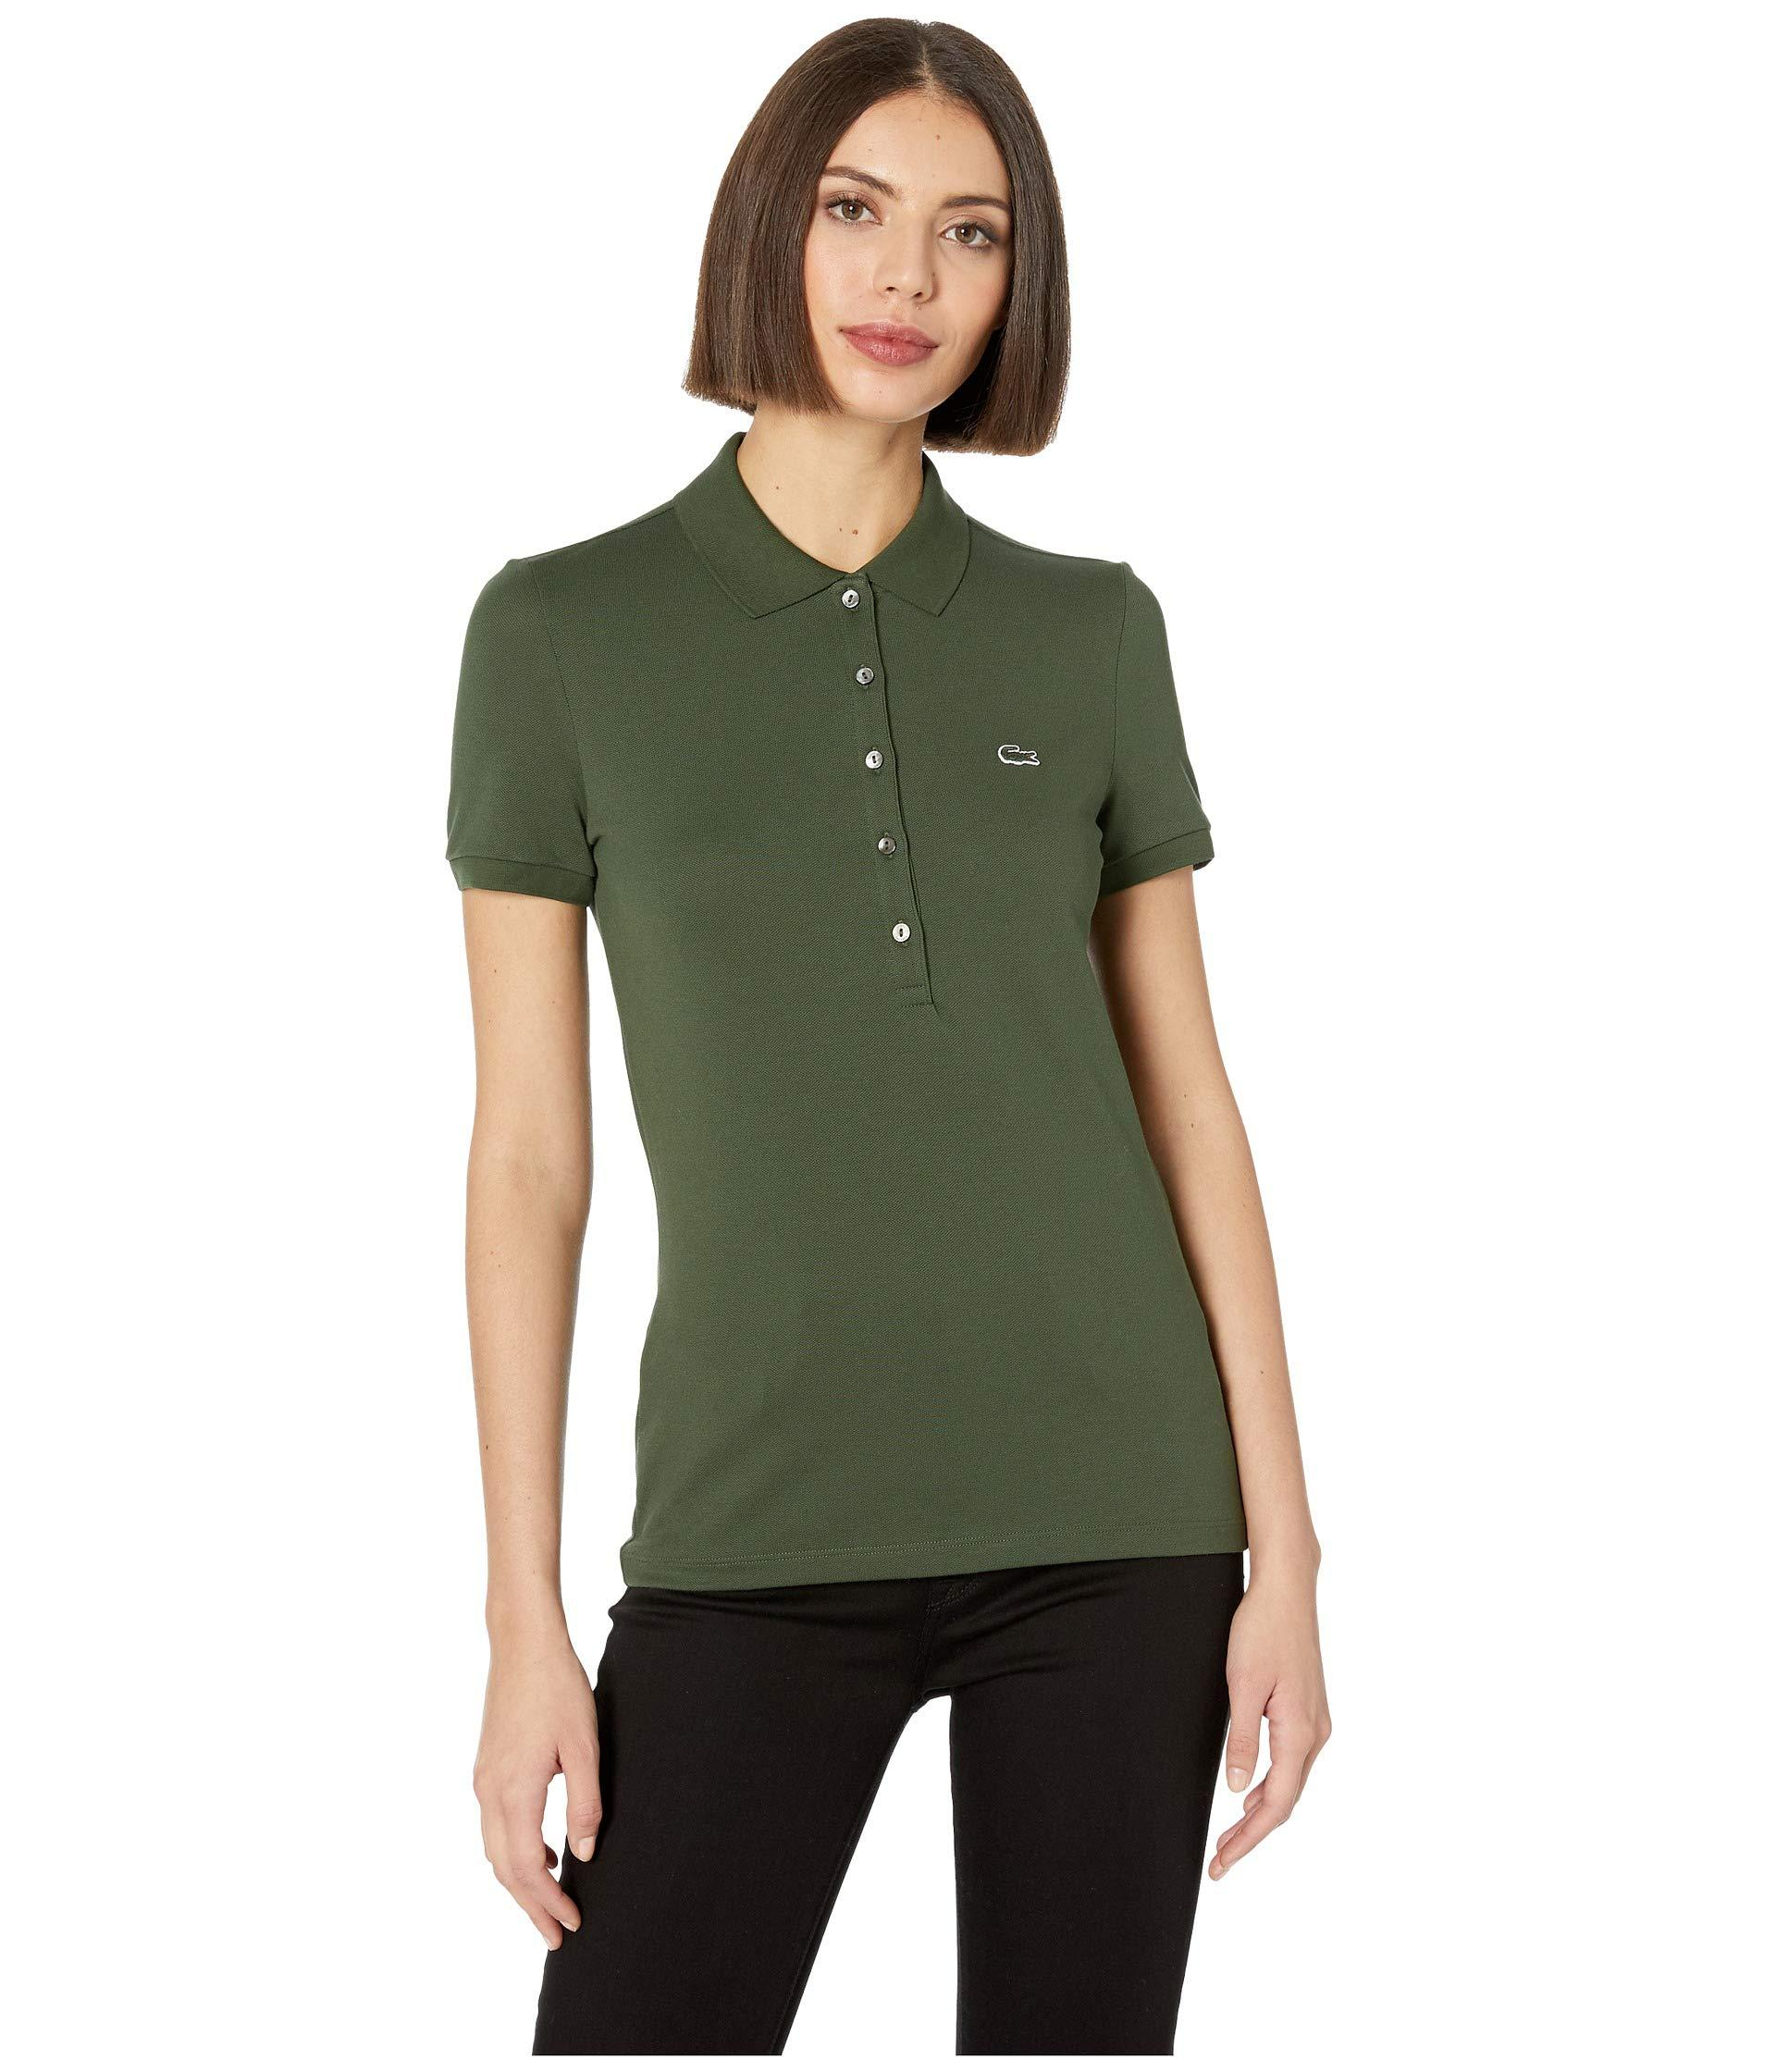 b9f9244be Lyst - Lacoste Classic Short Sleeve Slim Fit Stretch Pique Polo in Green